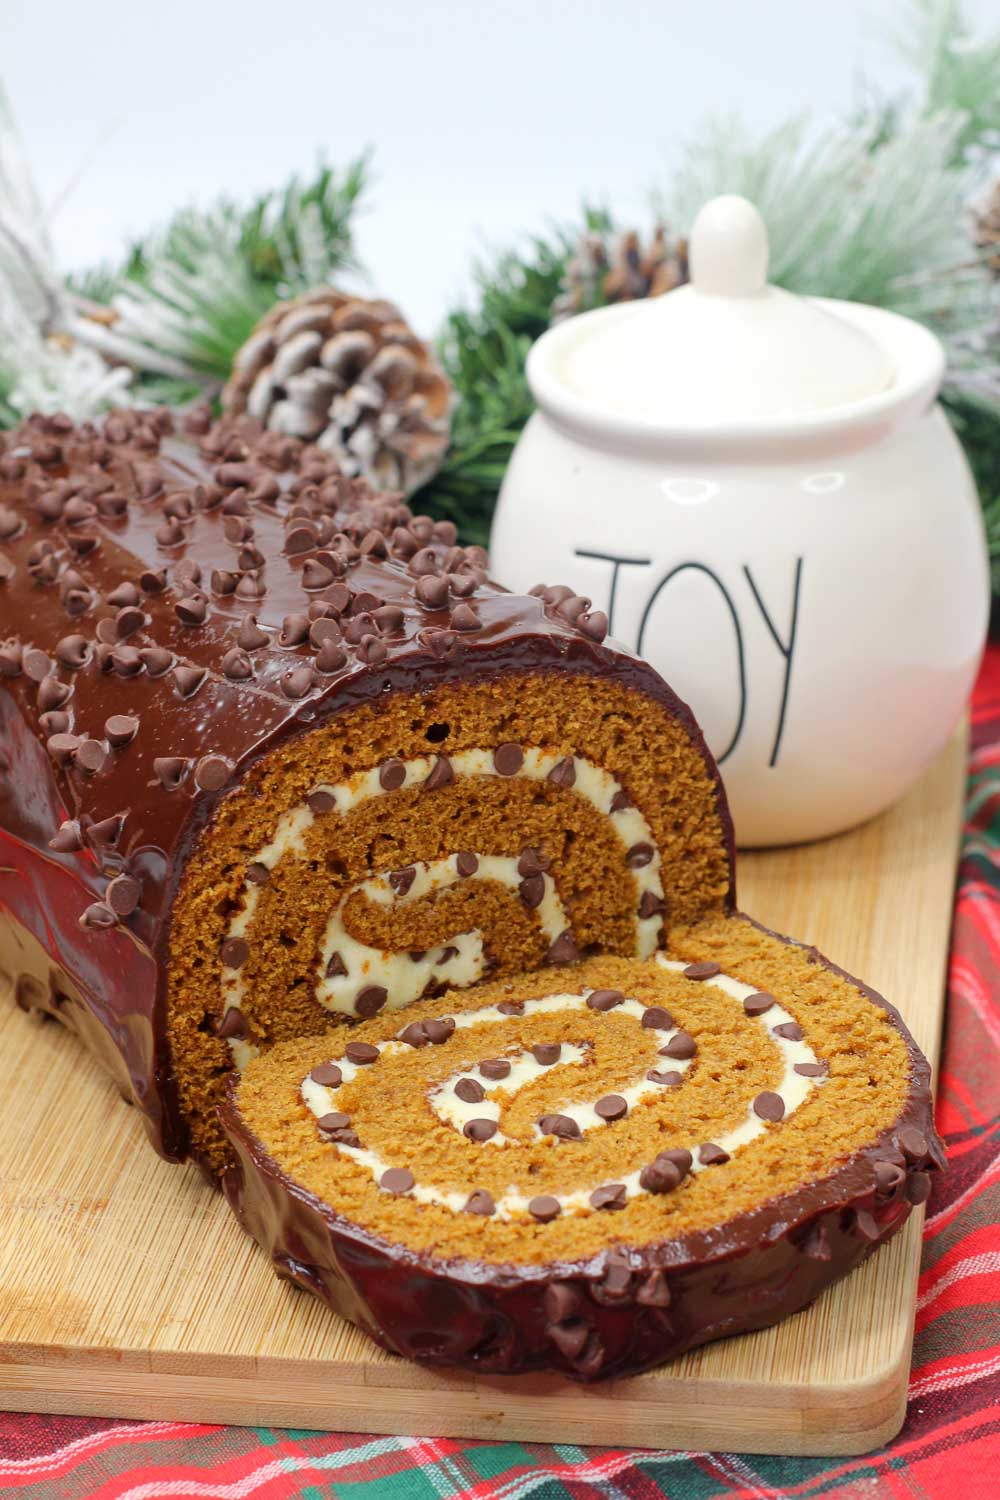 A nod to the classic childhood favorite, this chocolate pumpkin cheesecake roll combines a spongy, fluffy pumpkin cake with cheesecake filling and covered in chocolate ganache. Light and rich, this cake is for chocolate lovers everywhere.